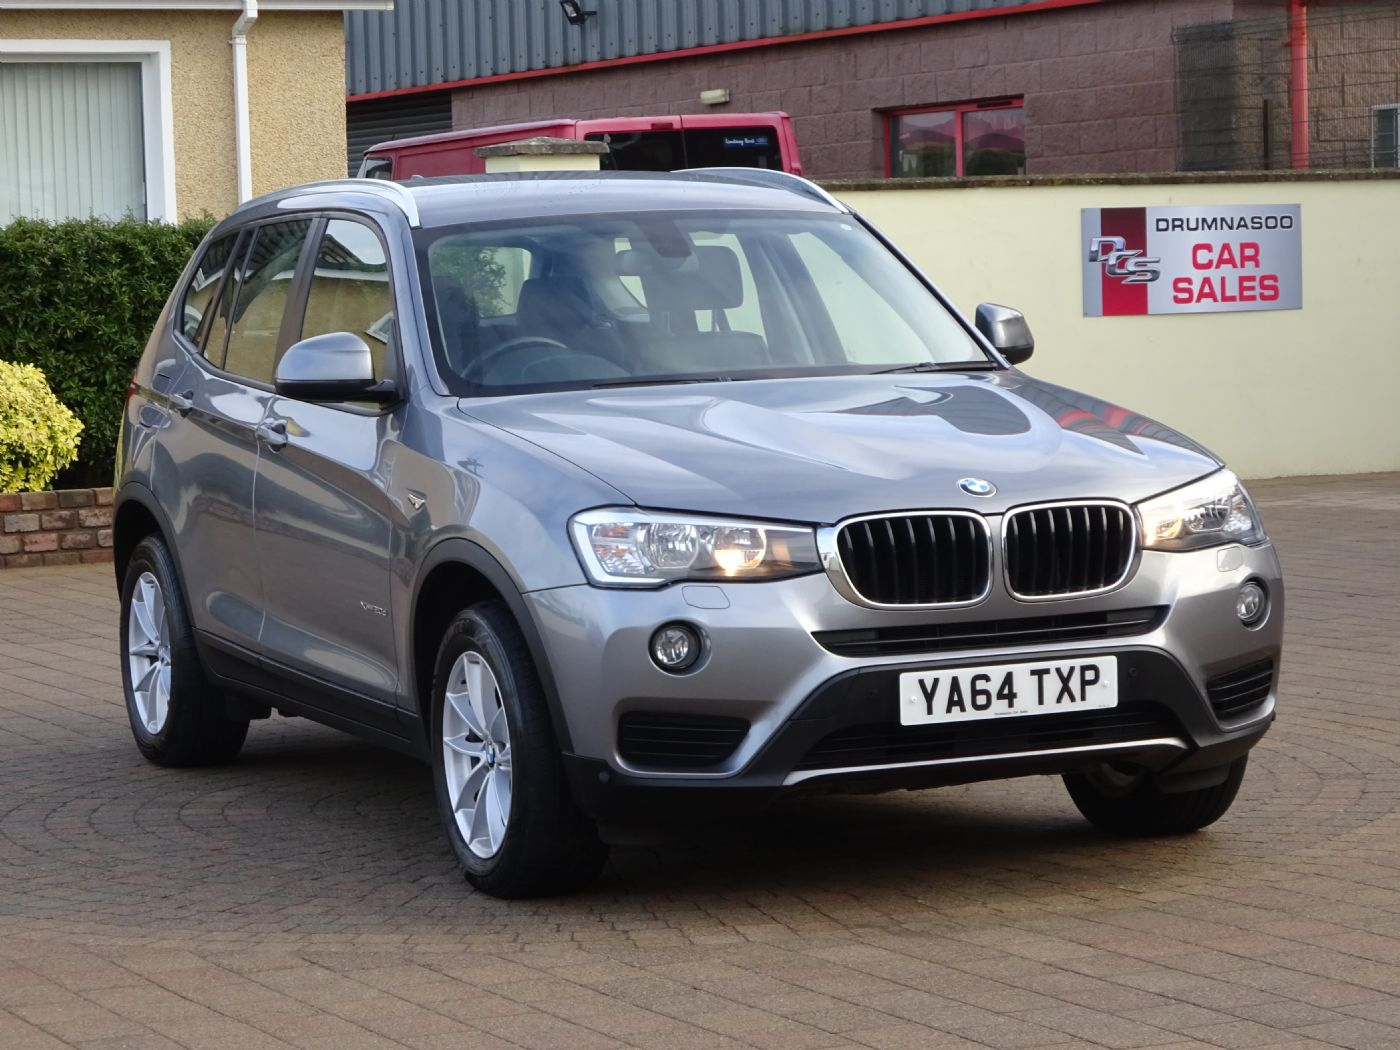 BMW X3 Xdrive 20D SE Auto, Heated leather seats, Sat nav